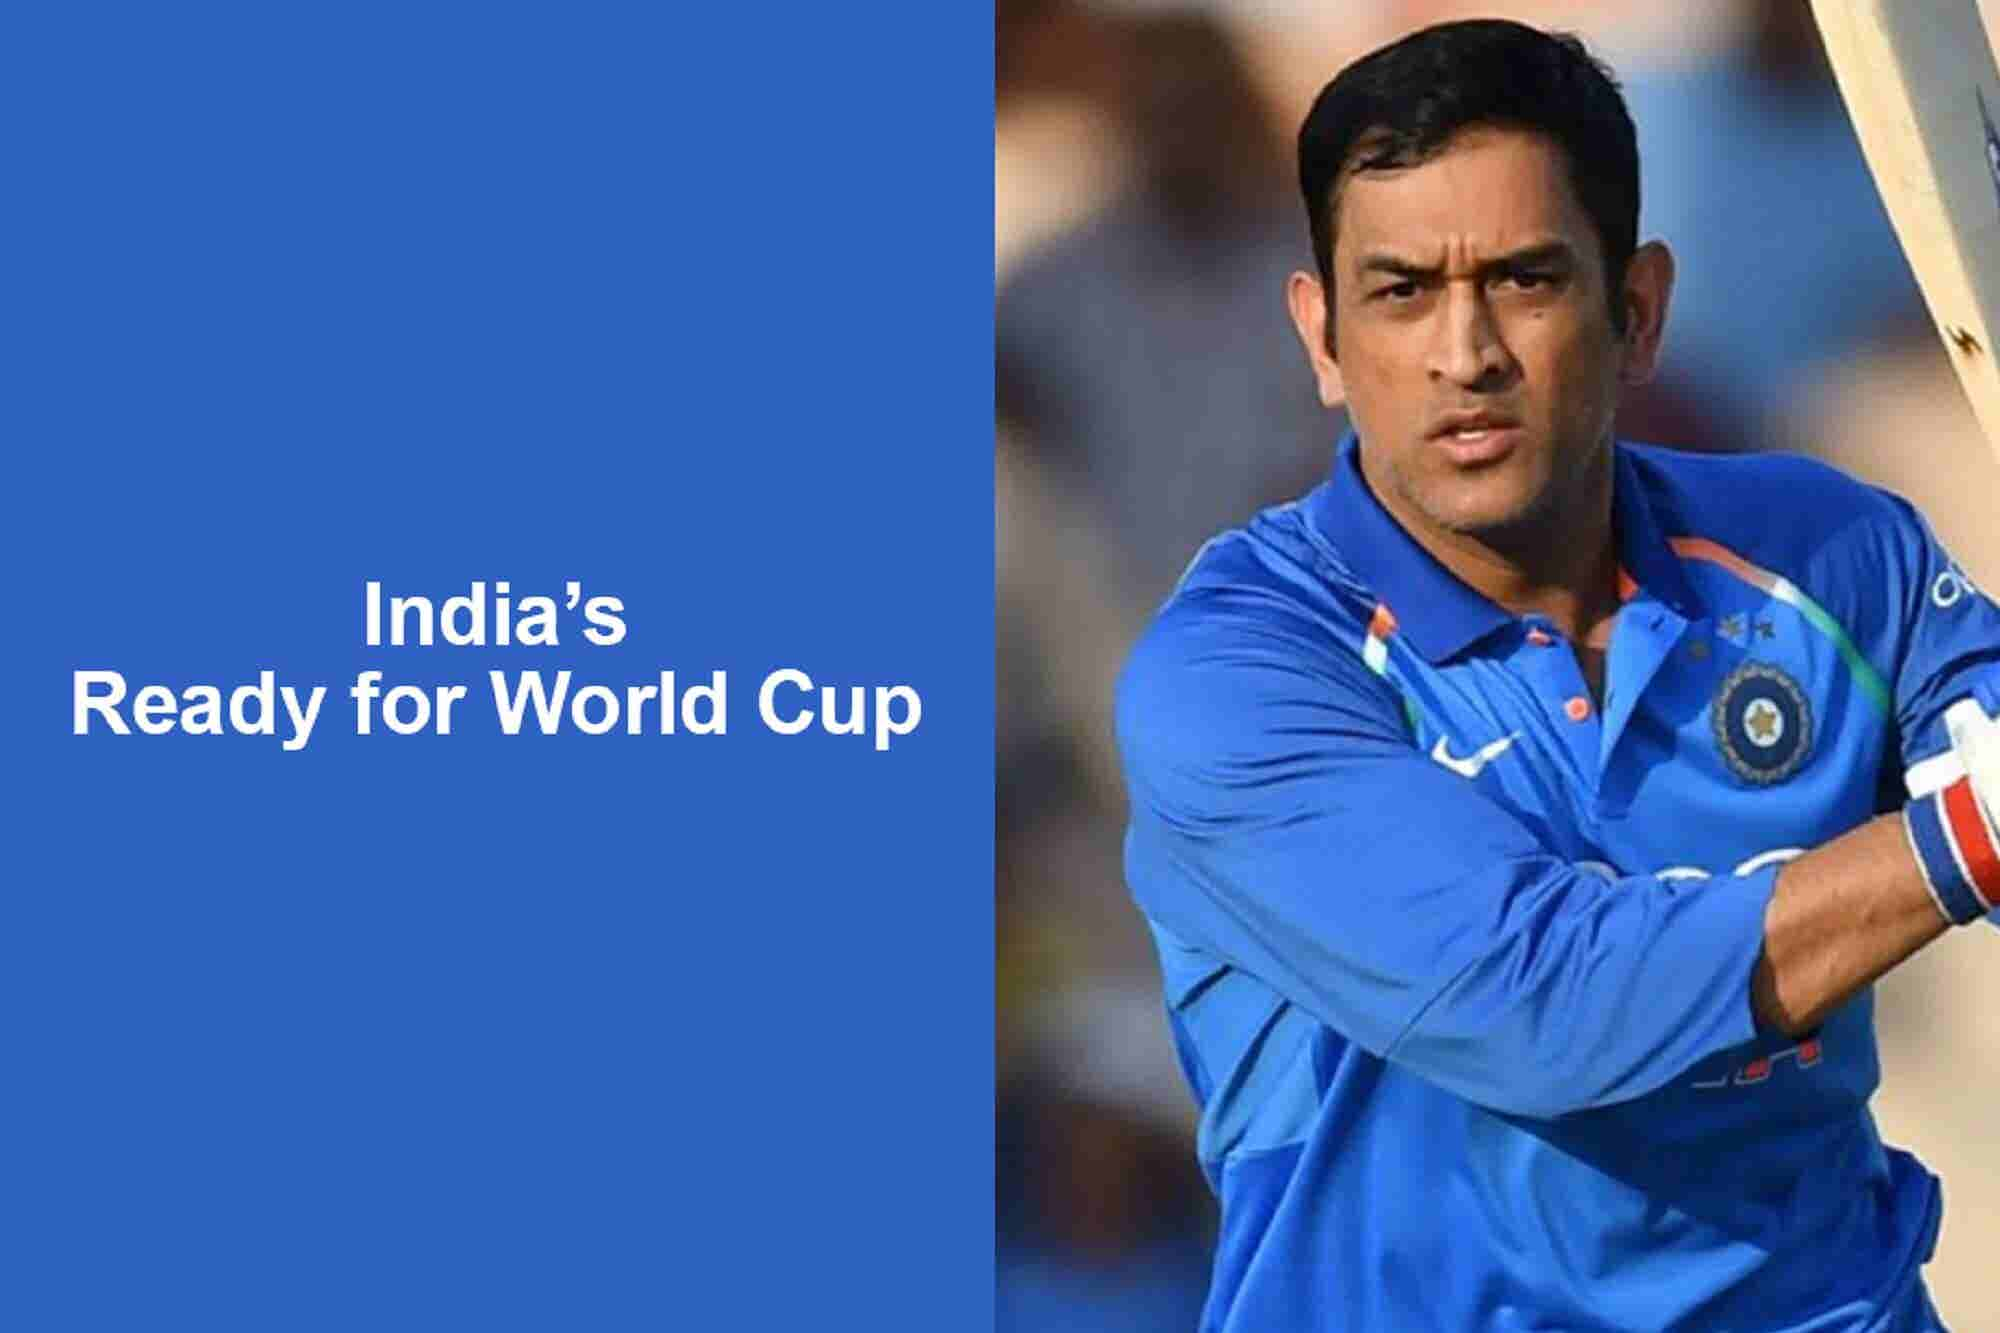 Monday Musings: India's World Cup Expectations & Dog's Debut at the Runway